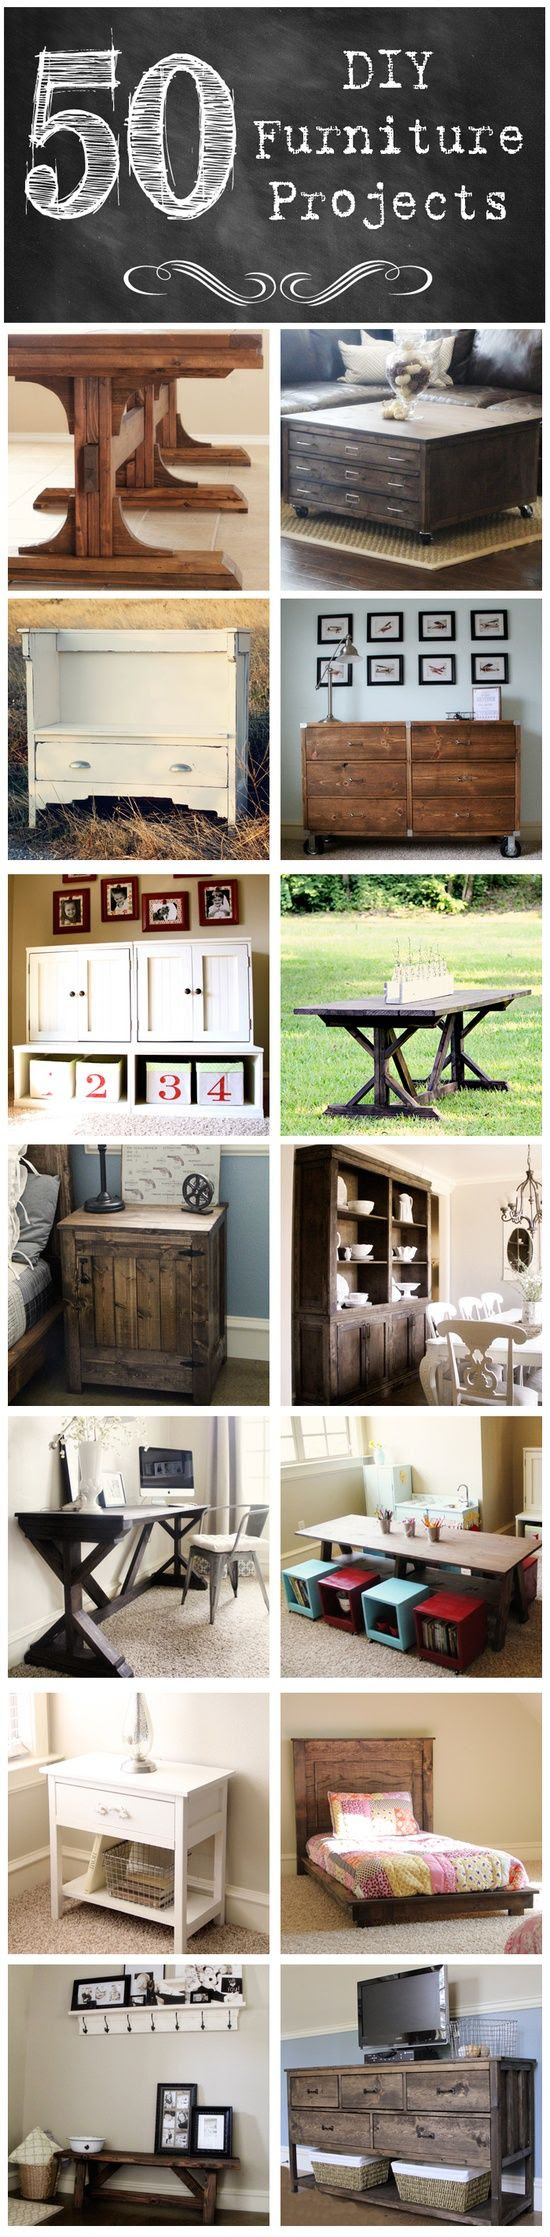 vintage inspired home furniture projects